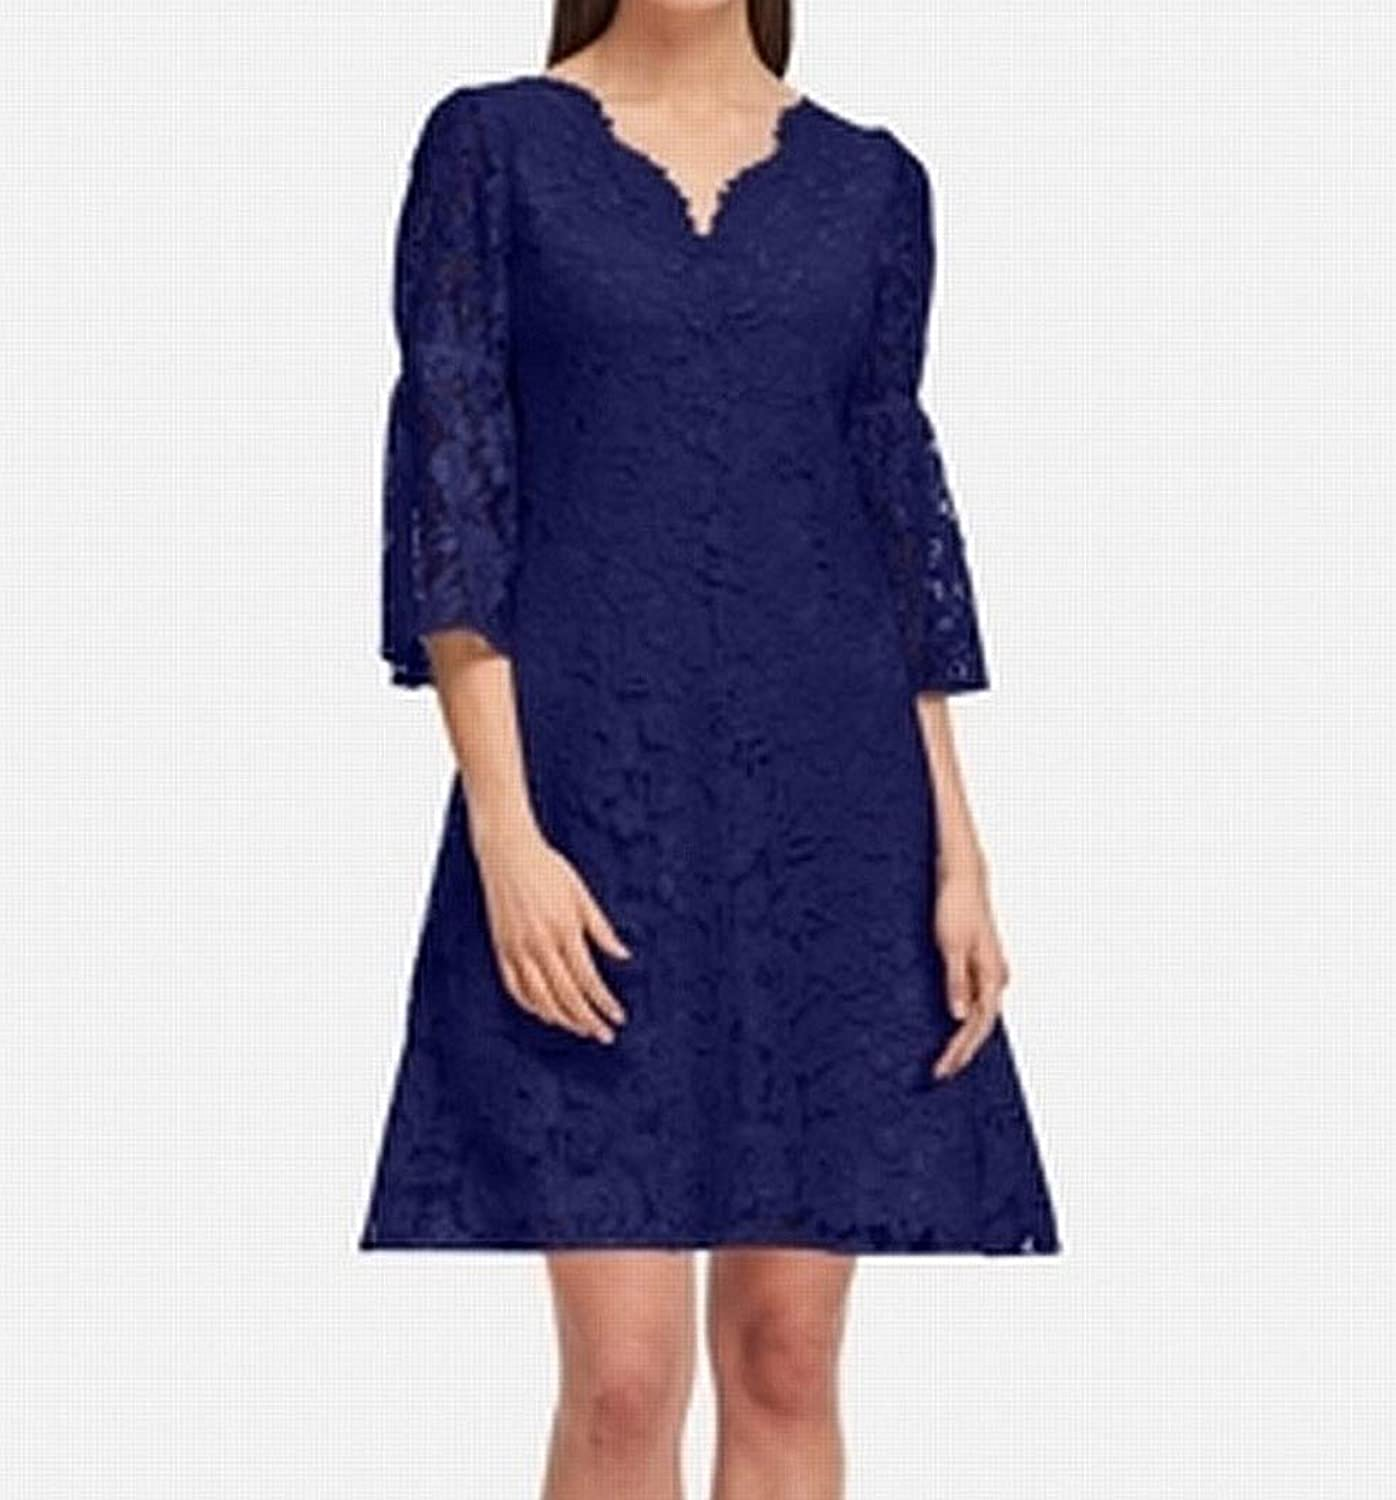 DKNY Womens Lace KneeLength Party Dress